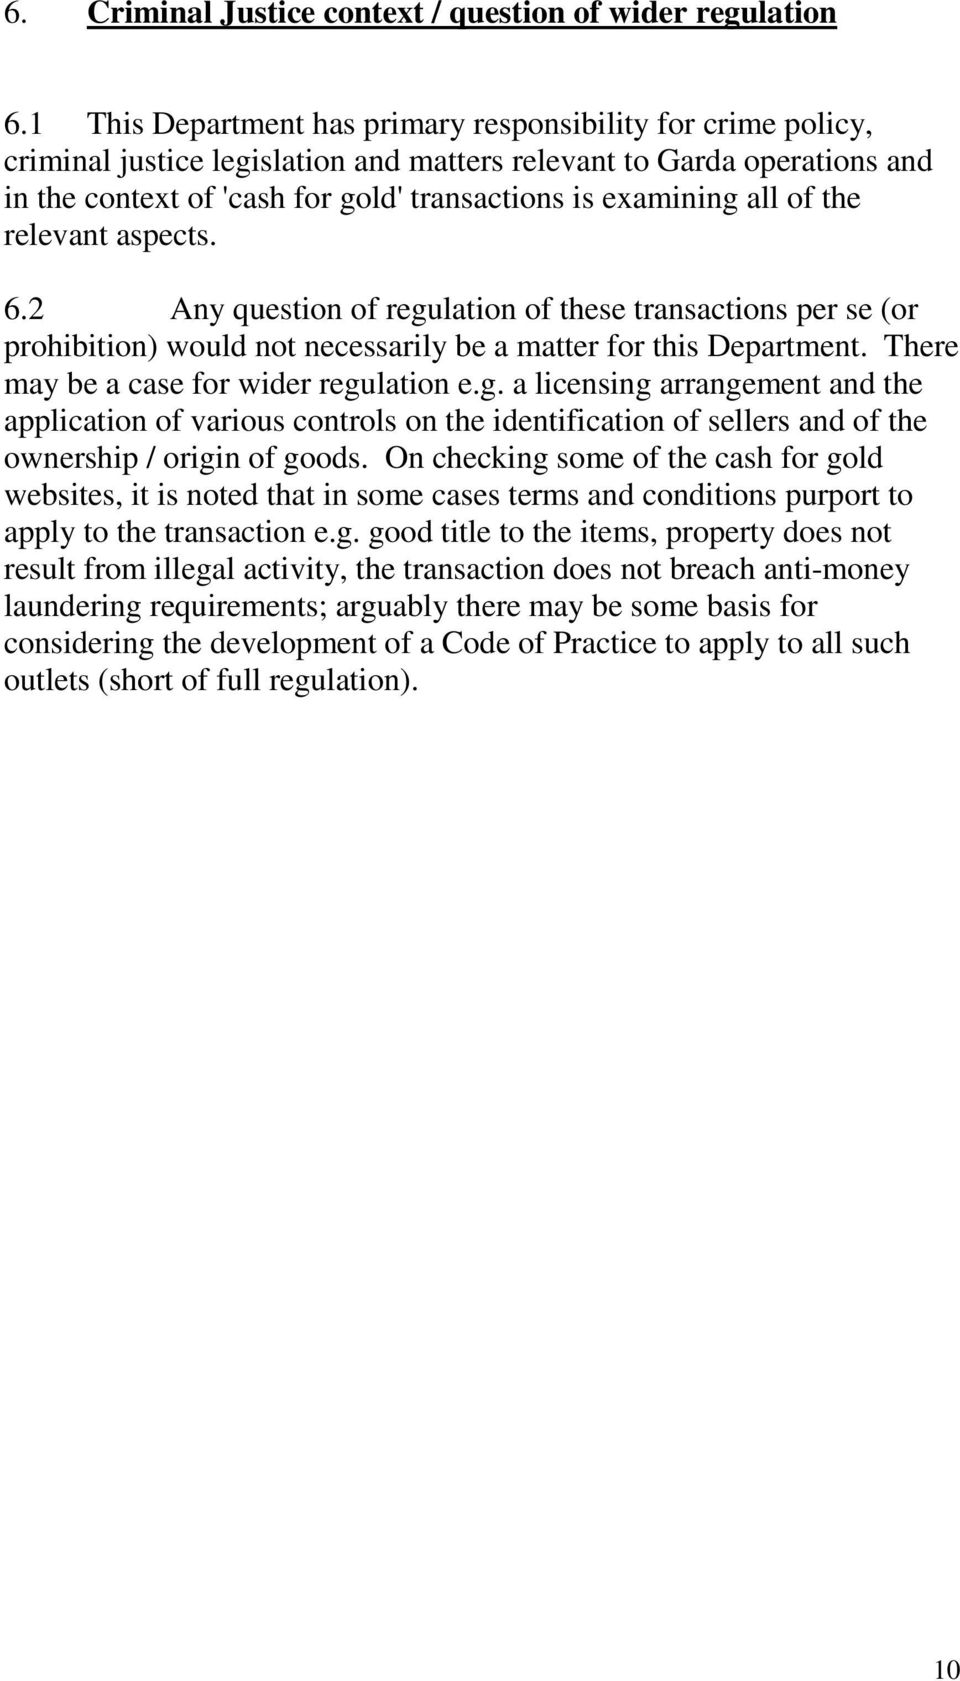 all of the relevant aspects. 6.2 Any question of regulation of these transactions per se (or prohibition) would not necessarily be a matter for this Department.